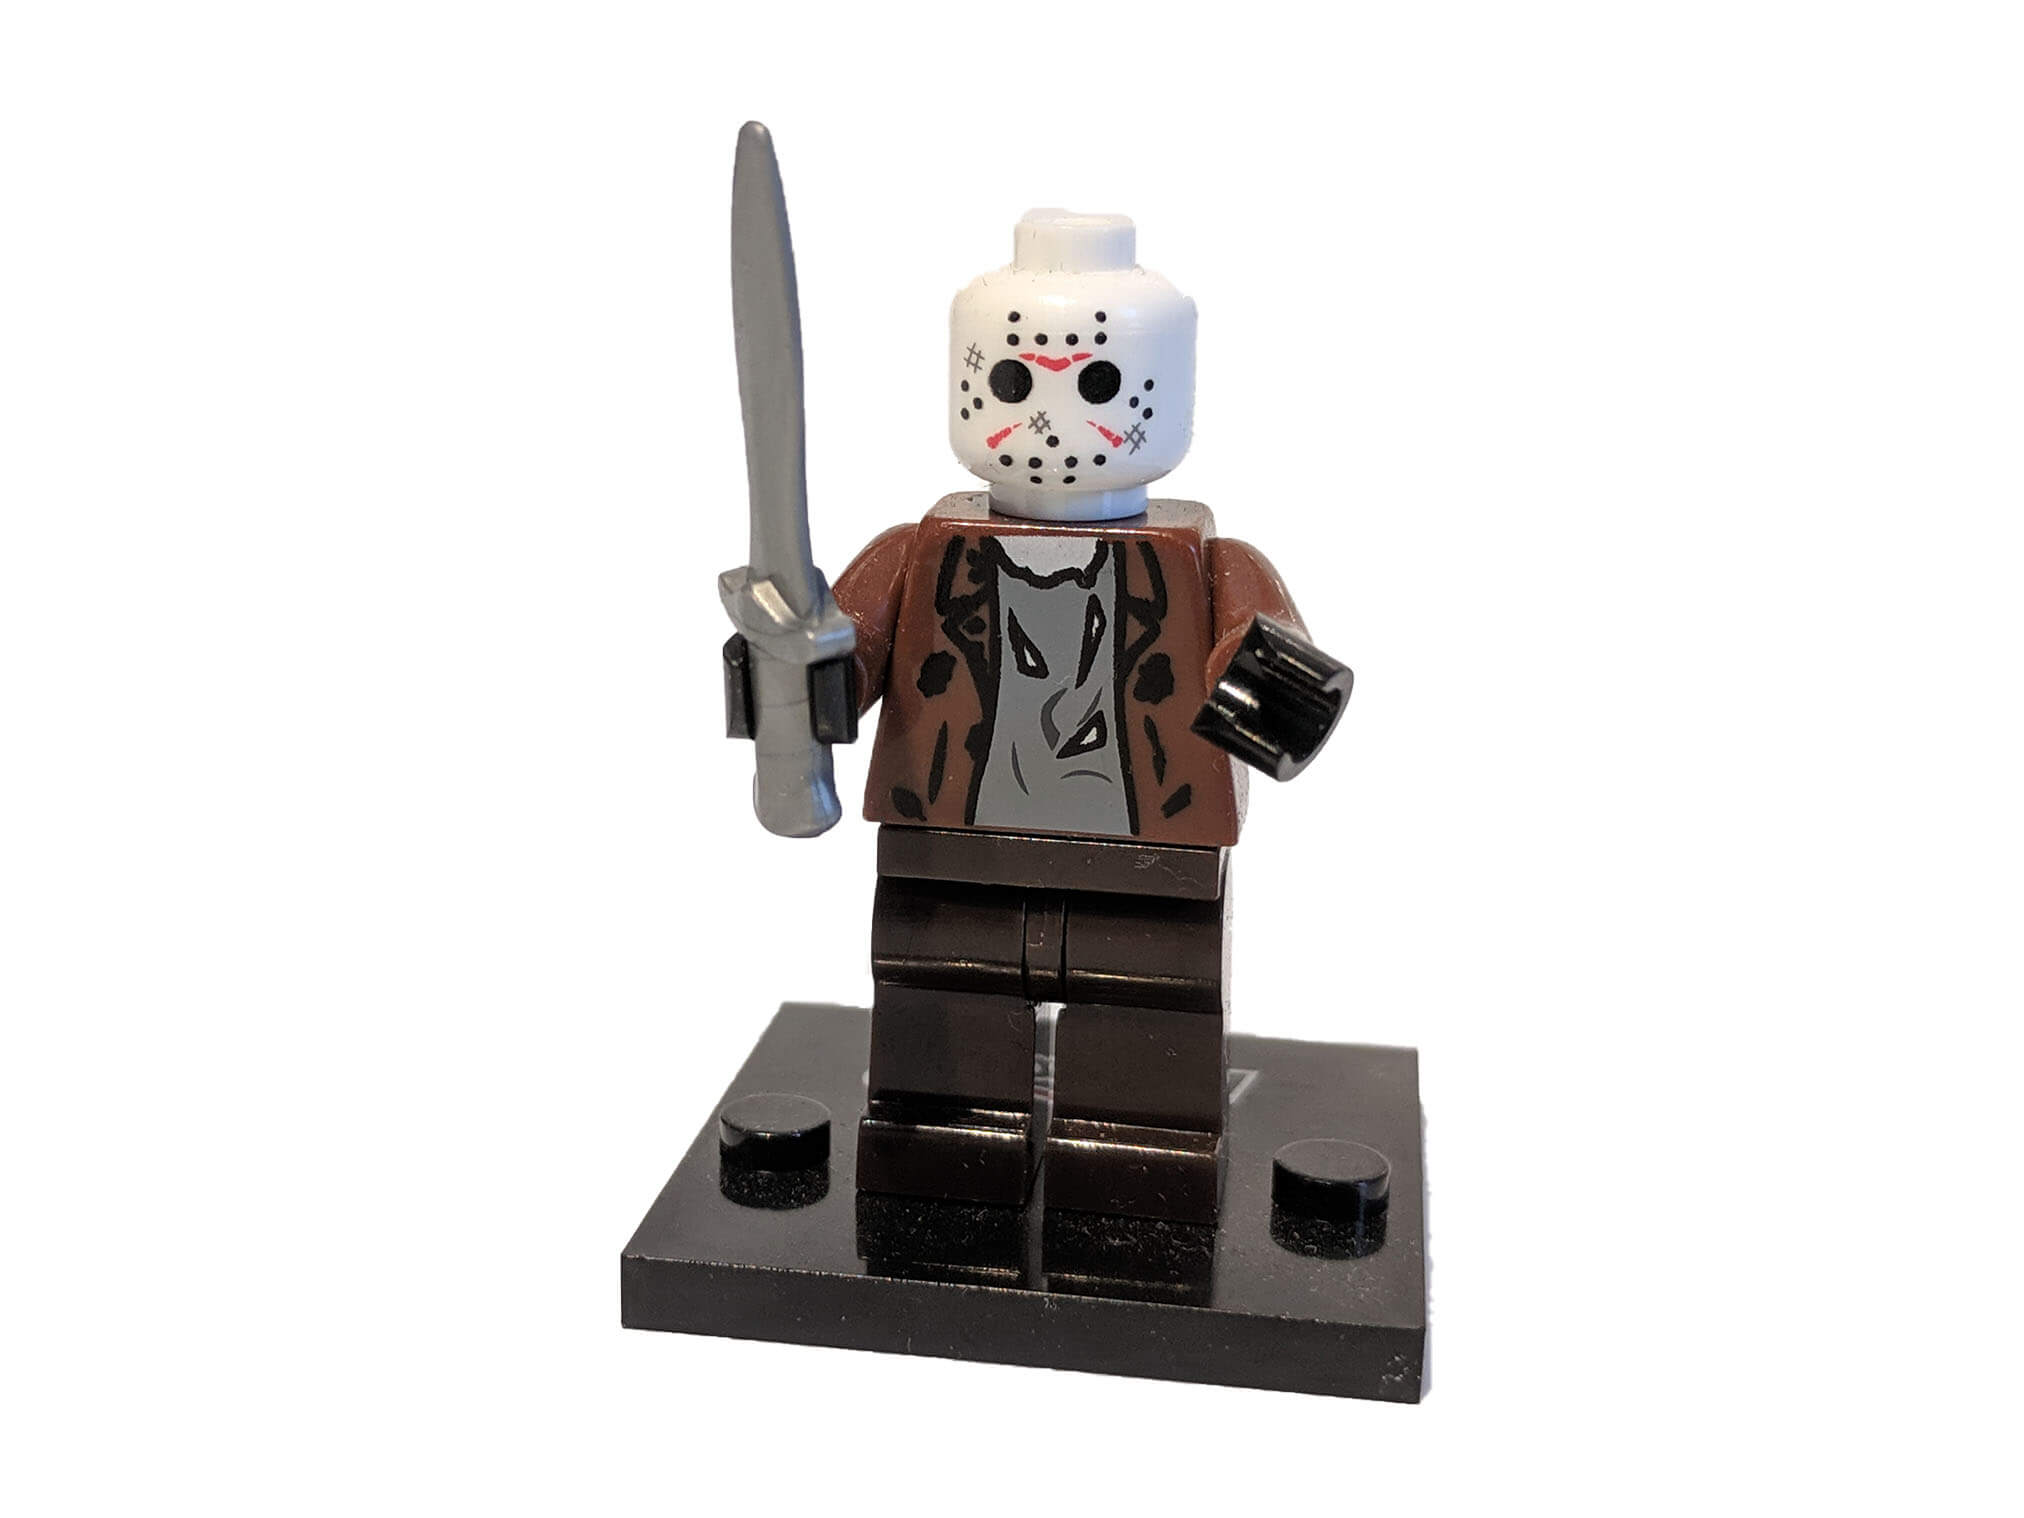 LEGO-Friday13th-Jason-Voorhees.jpg